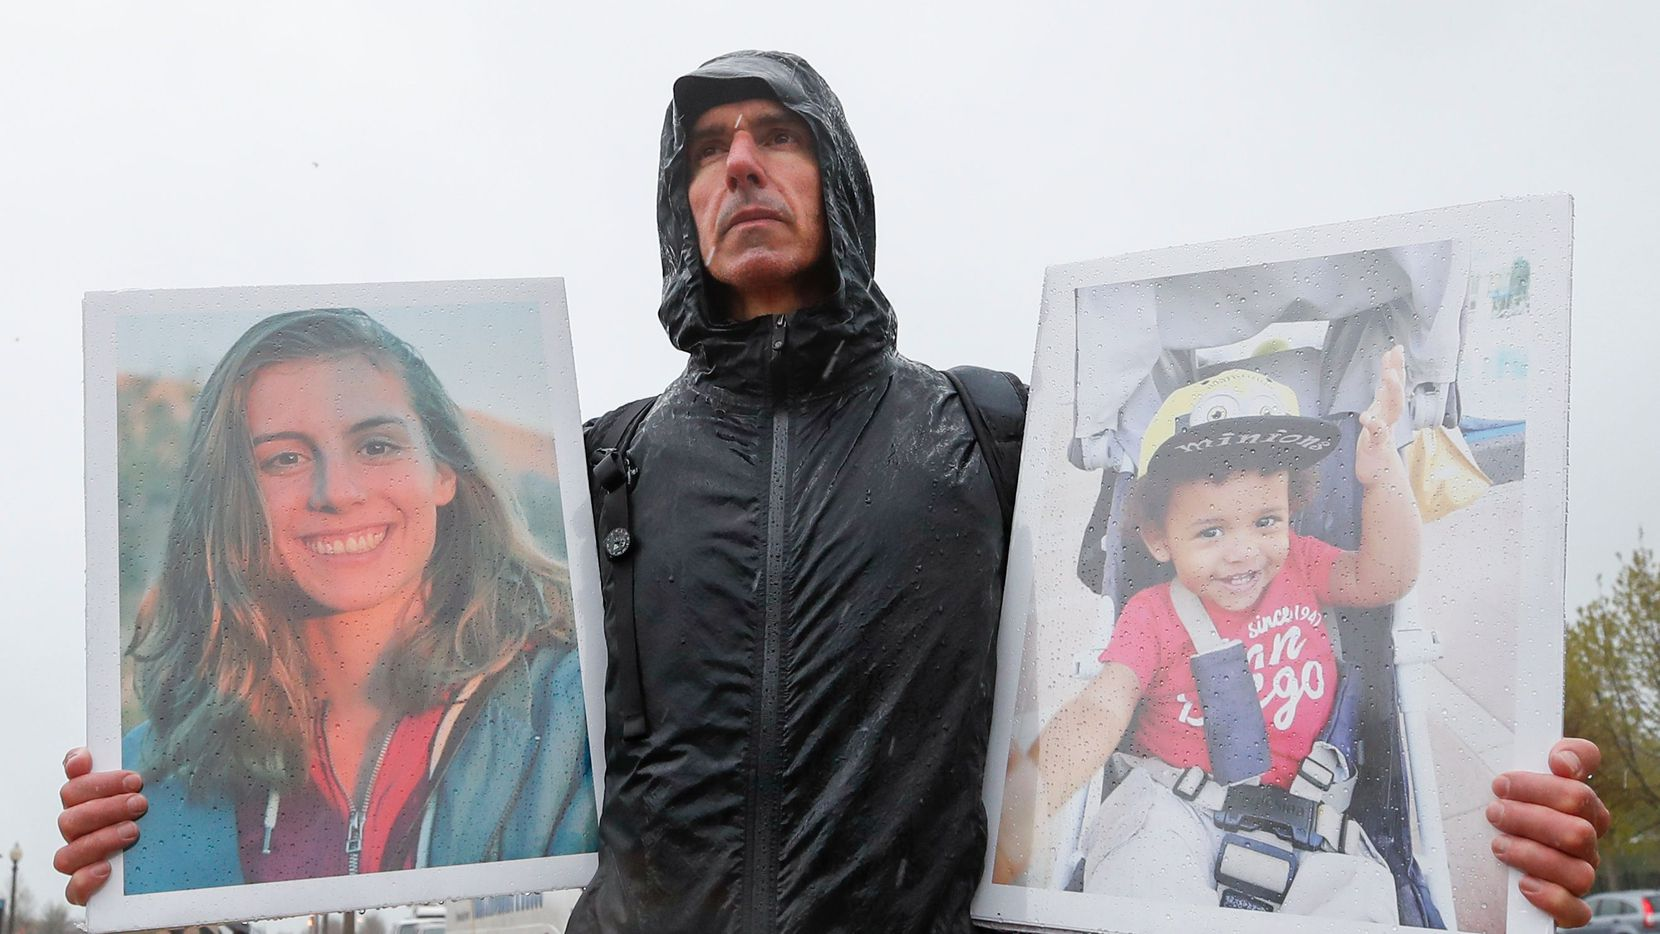 Tarek Milleron holds the photographs of victims in the Ethiopian Airlines Flight 302 Boeing plane crash during a protest outside Boeing's annual shareholders meeting at the Field Museum on April 29, 2019 in Chicago, Illinois.